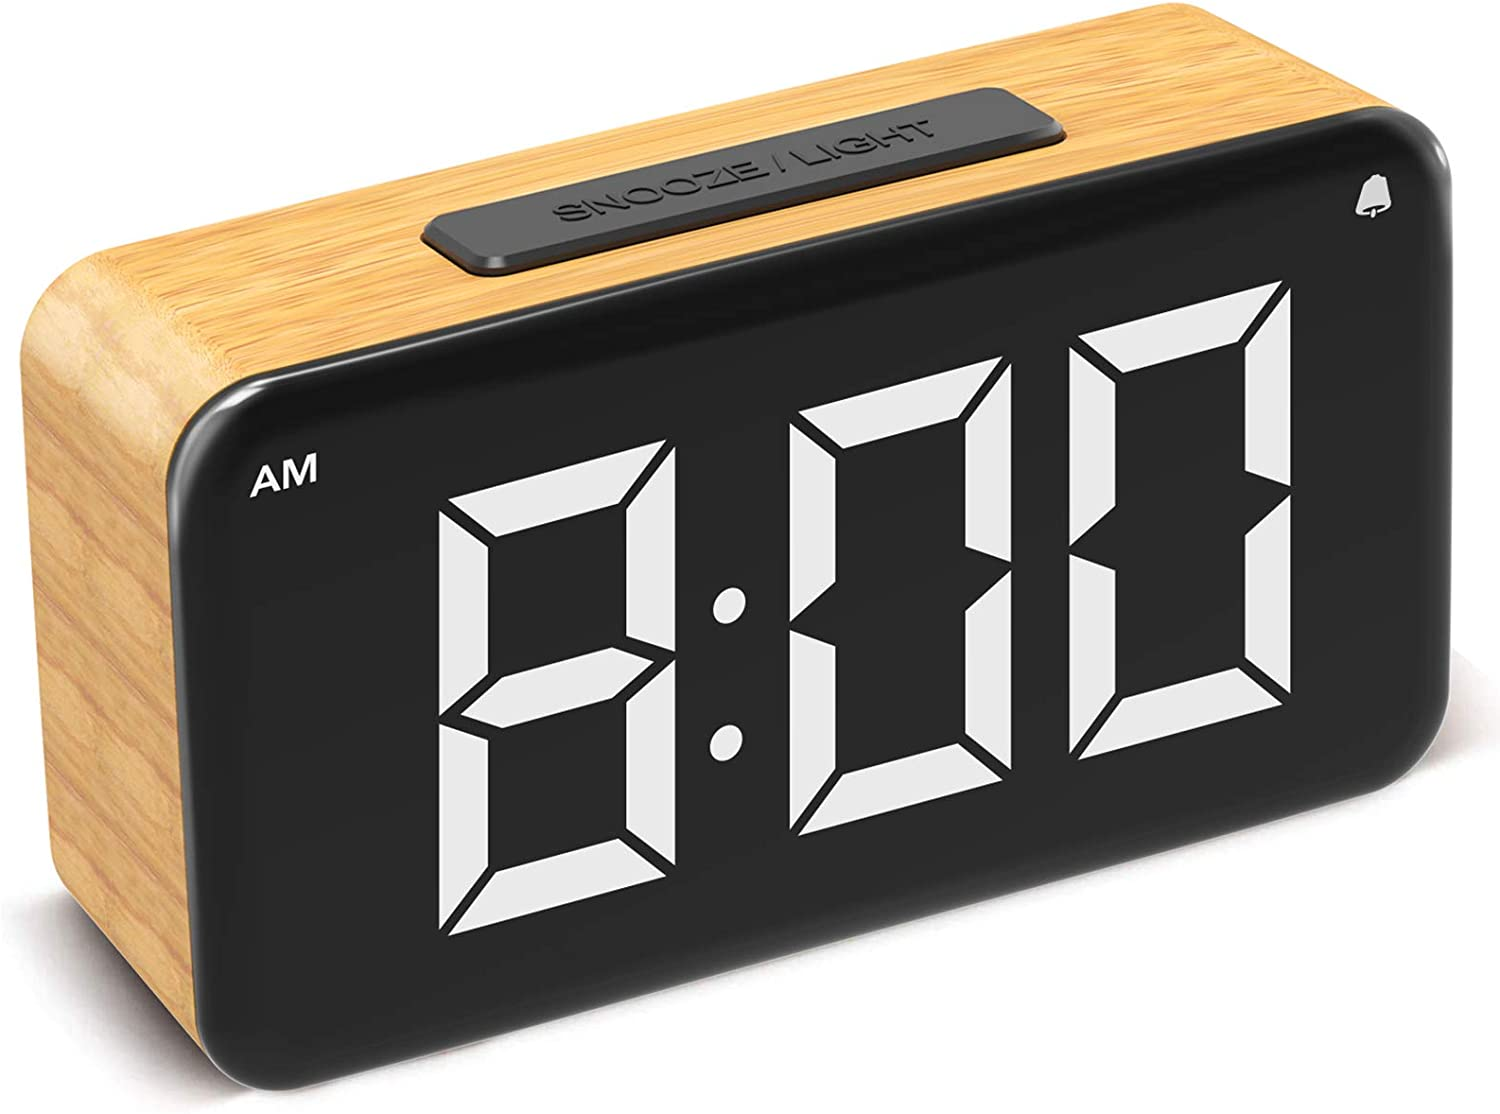 Alarm Clock Digital Clock Easy Use Clock With Snooze 6 Led Large Display Number 6 Brightness Dimmer Wood Grain Clock With Usb Charge Electric Beside Clocks For Home Bedrooms Desk Wood Kitchen Dining